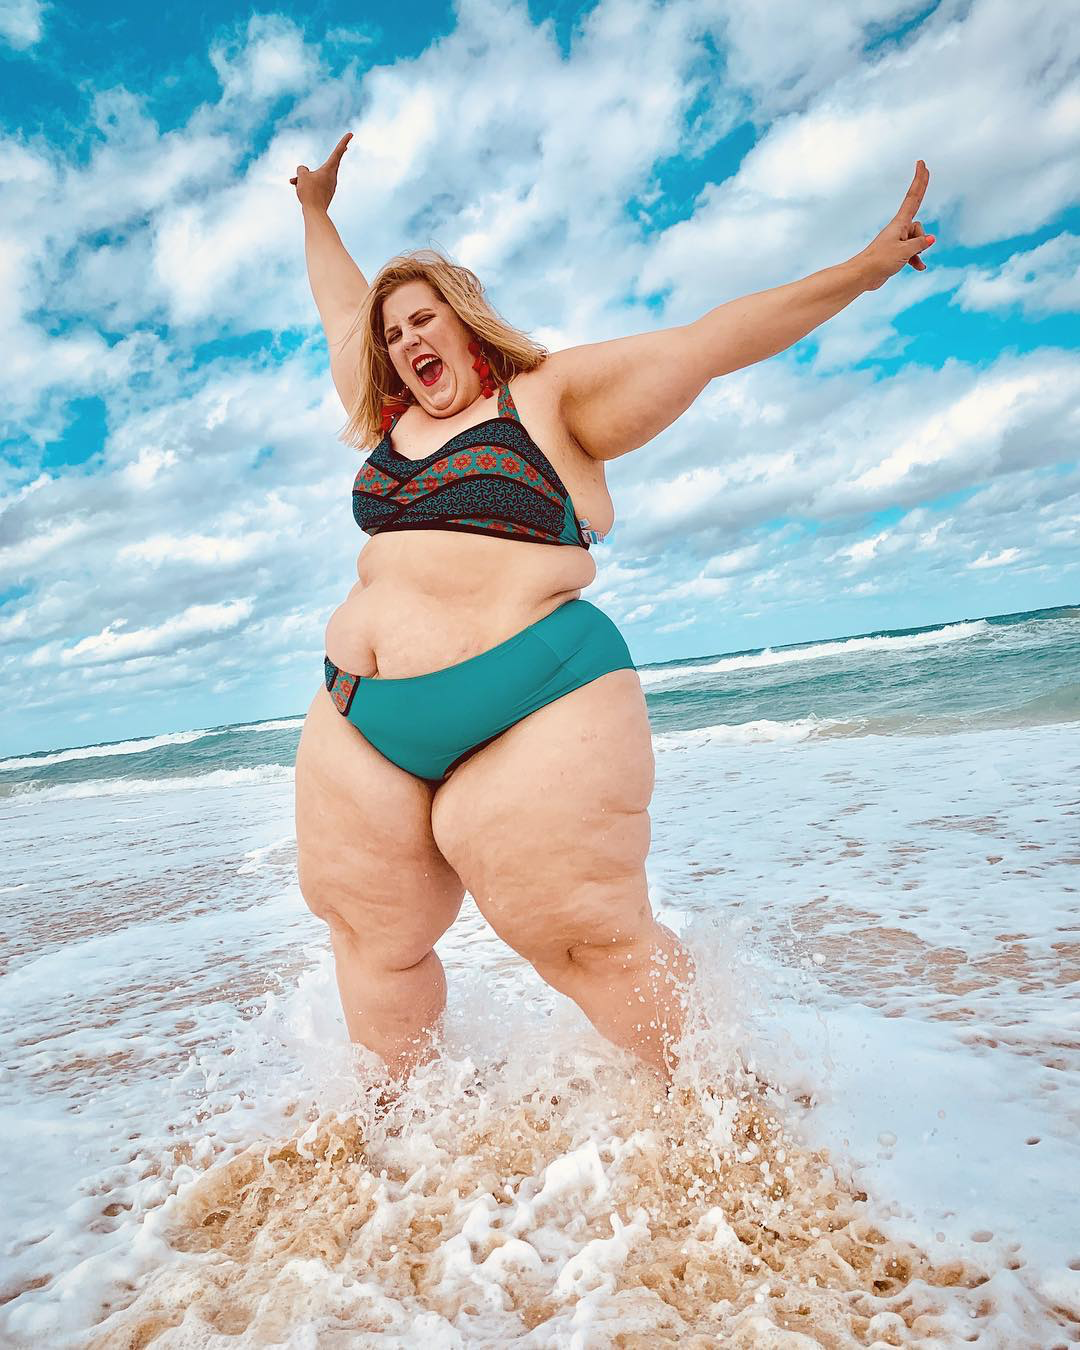 63d226d559b23 This Plus-Sized Model's Bikini Pic Is Sparking Controversy on Twitter -  Health